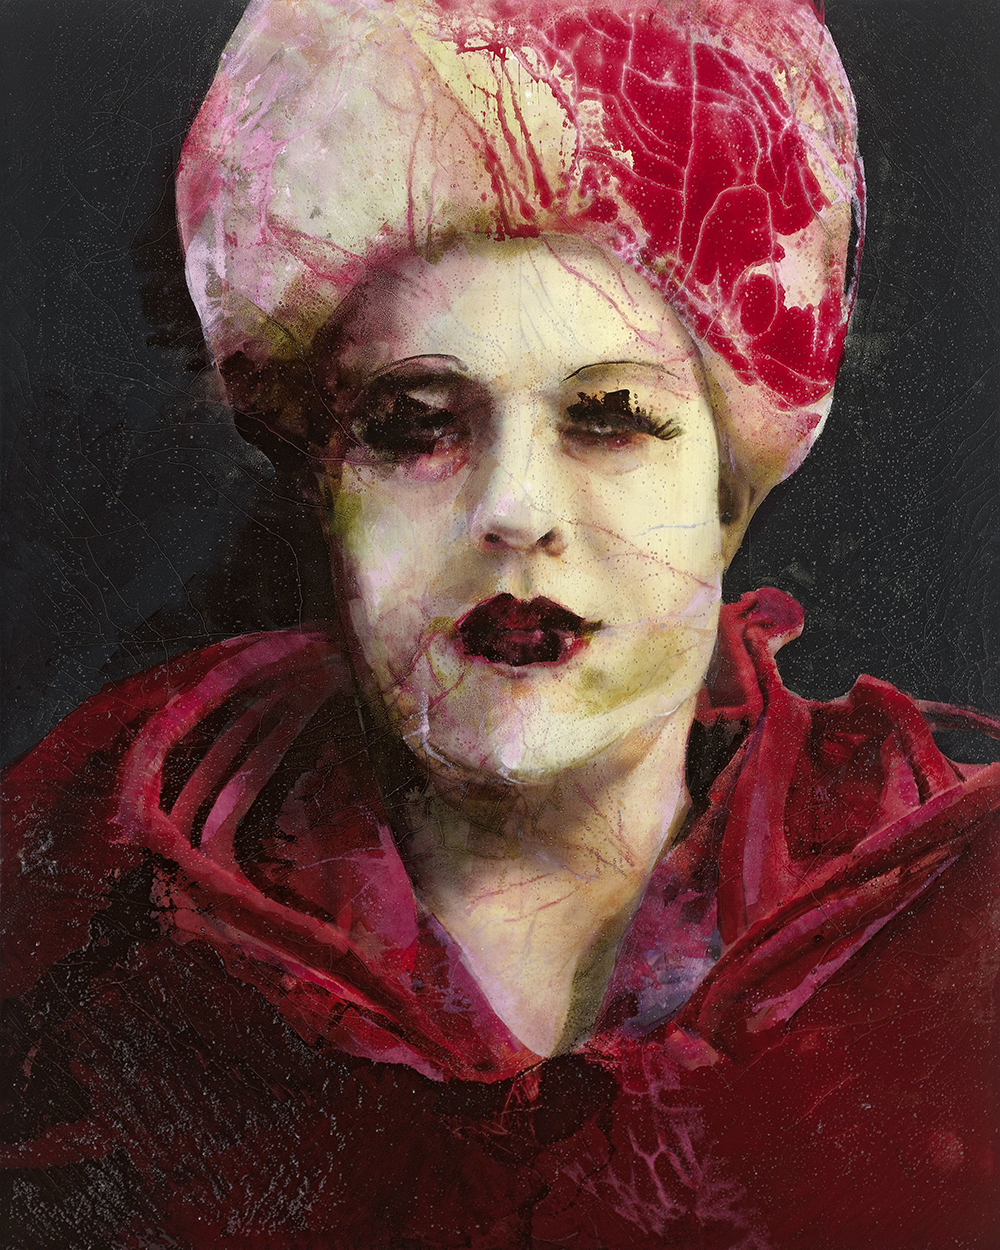 Lita Cabellut: Serie: Serie: After the show/2012 200x180xm, gemengde techniek op linnen